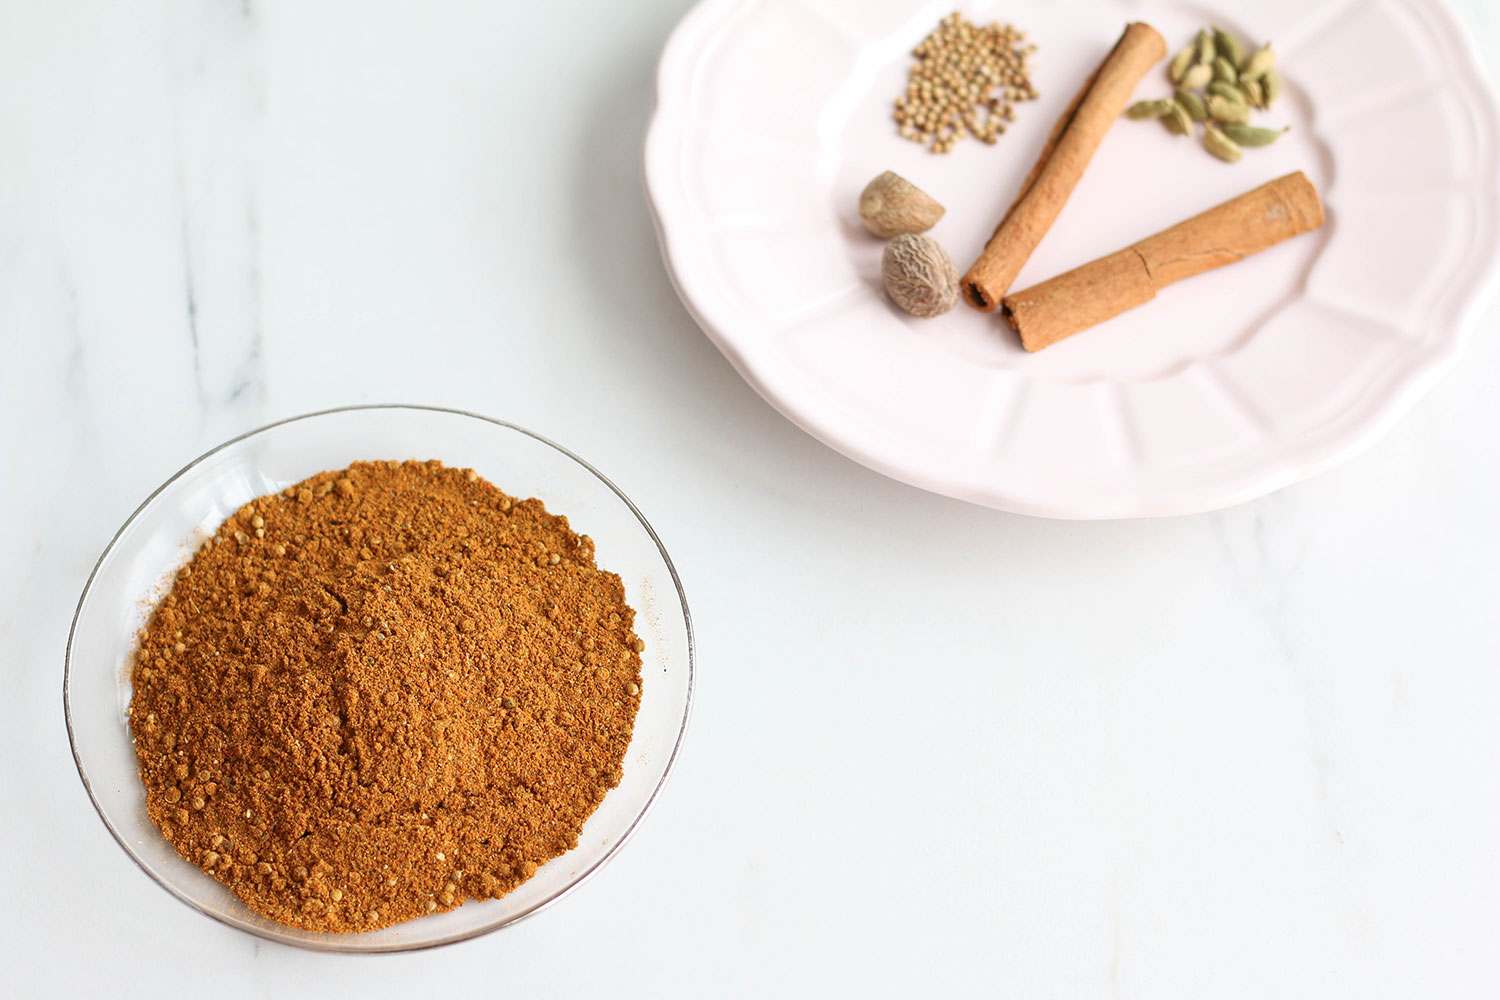 Homemade Moroccan spice mix recipe: Great for couscous, tagine and for seasoning meat! https://www.spotebi.com/recipes/moroccan-spice-mix-recipe/